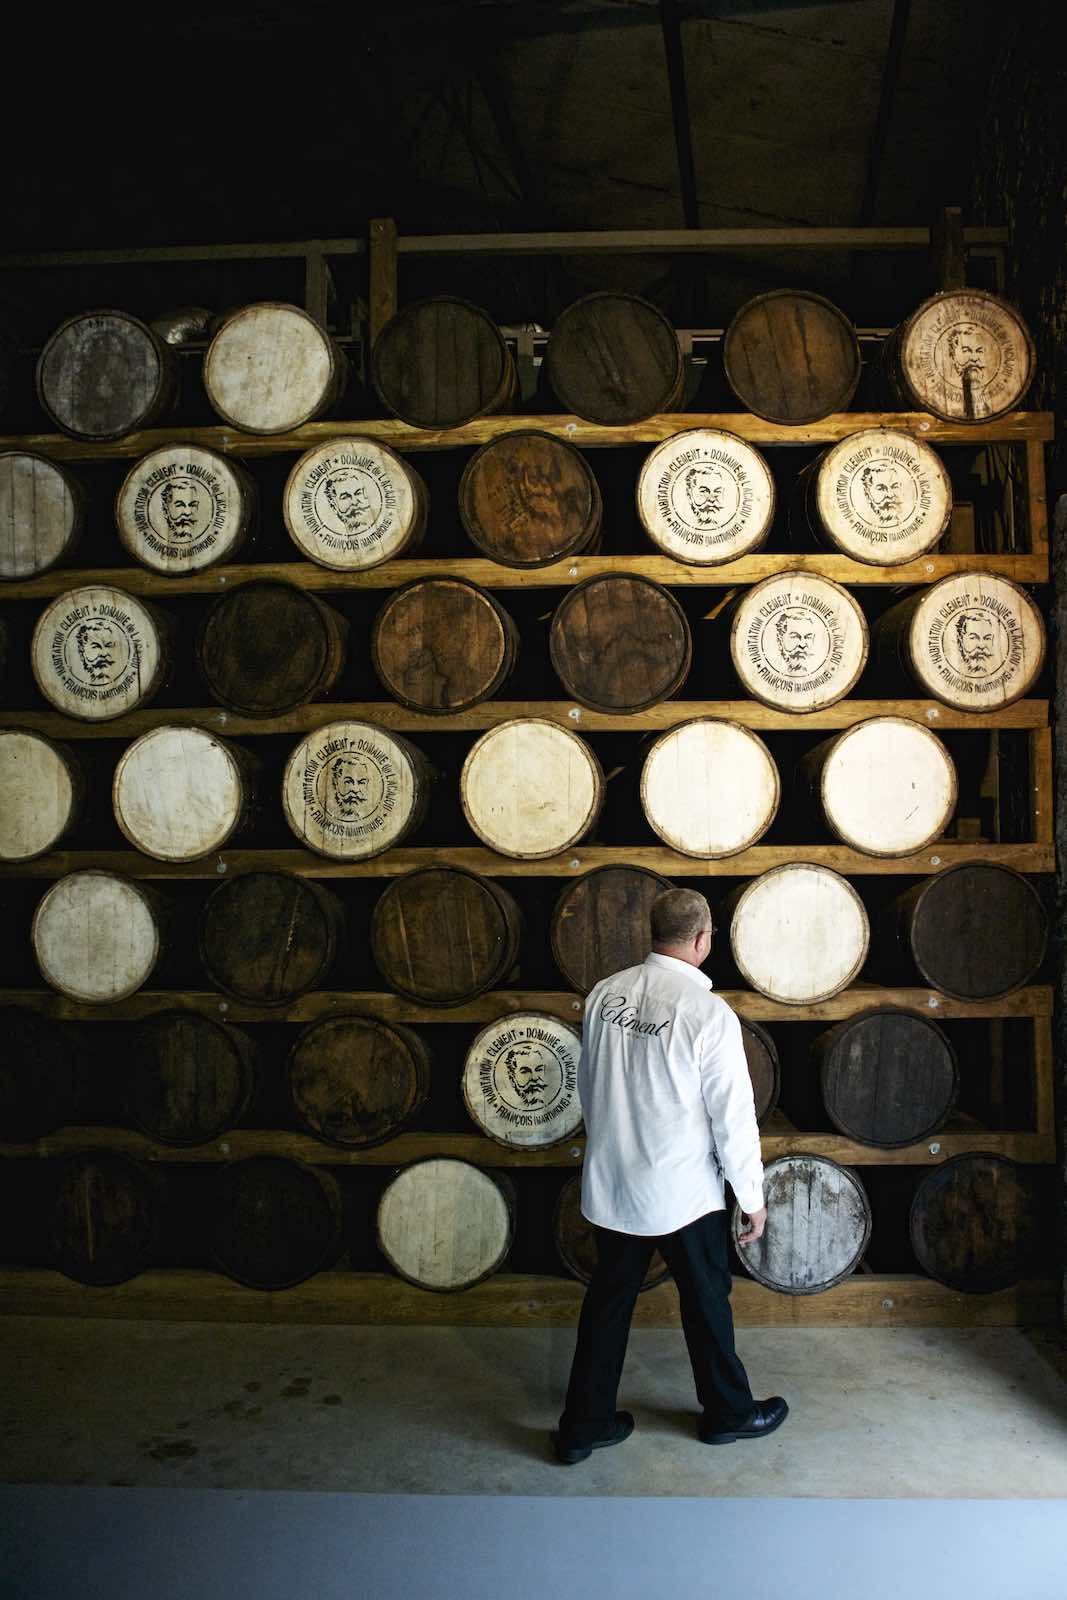 Jody Horton Photography - Jody Horton Photography - Formally dressed man observing stacks of wood barrels in the distillery.